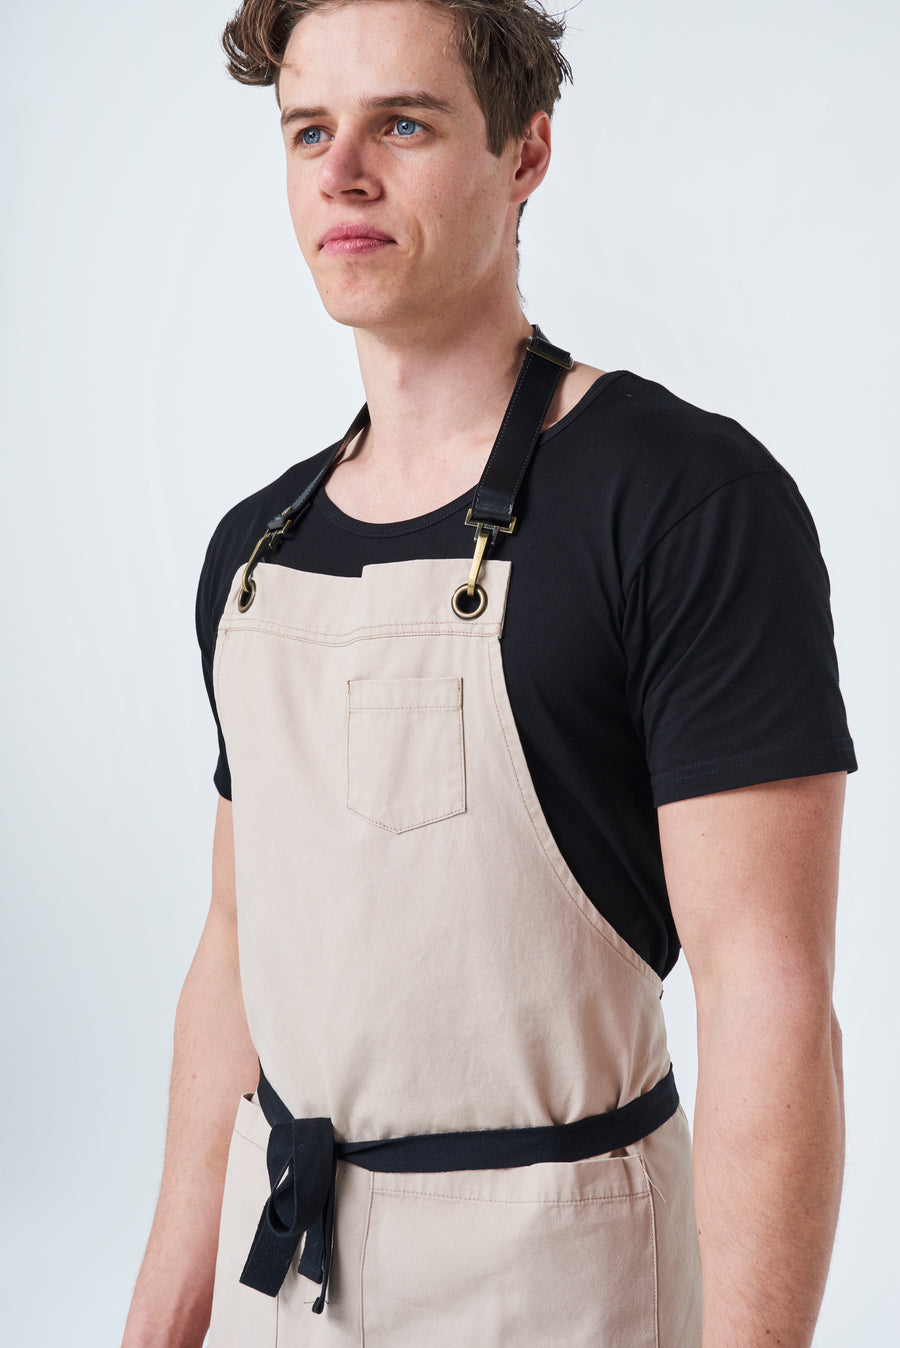 ORLANDO Apron with Leather neck strap - Stone Canvas